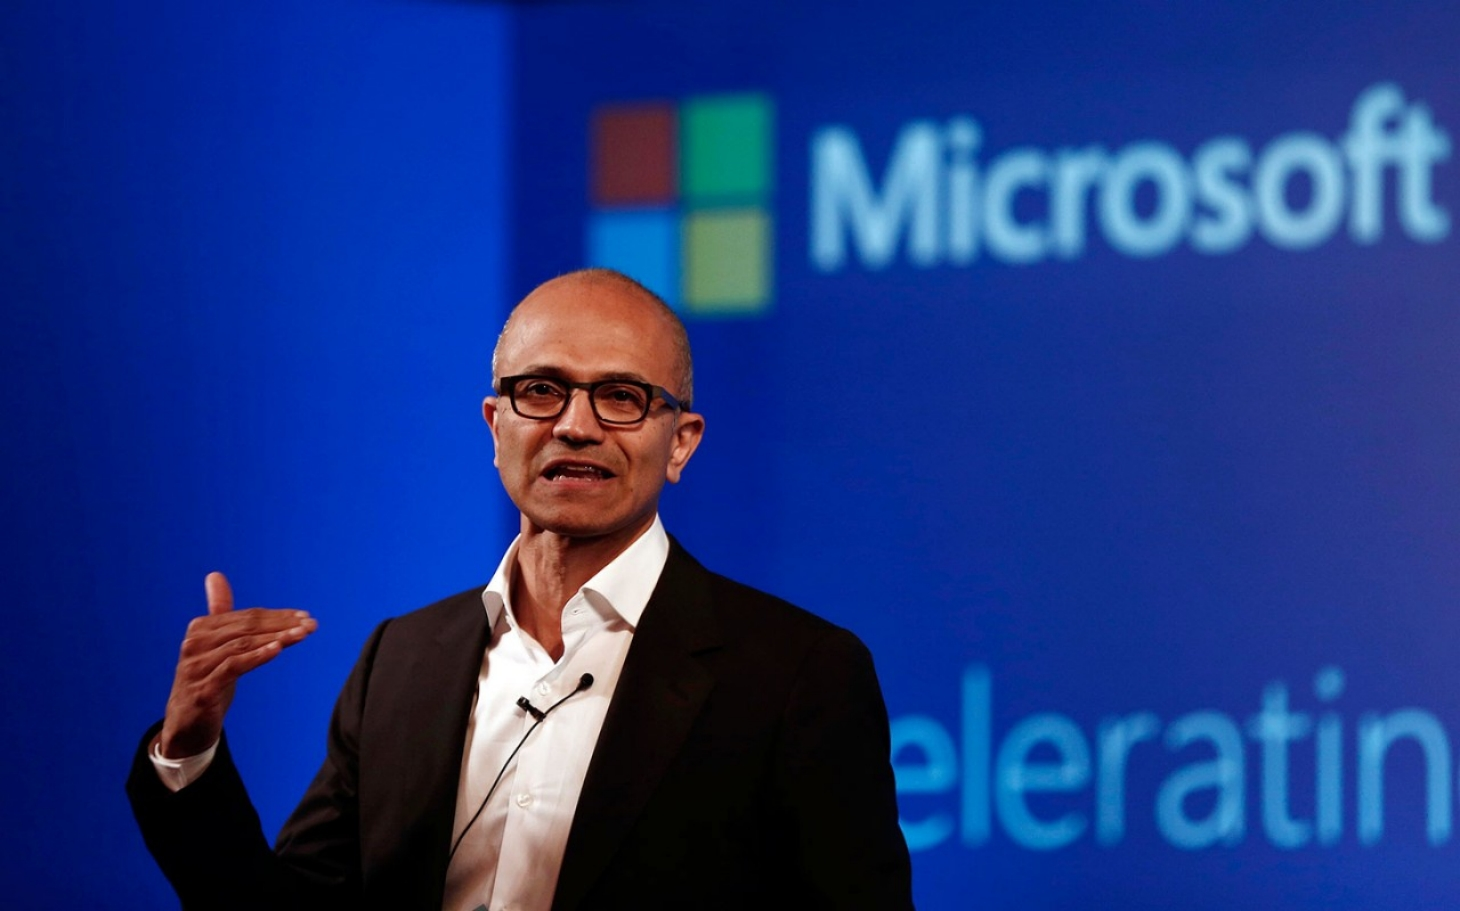 Microsoft CEO apologizes over 'completely wrong' women's ...